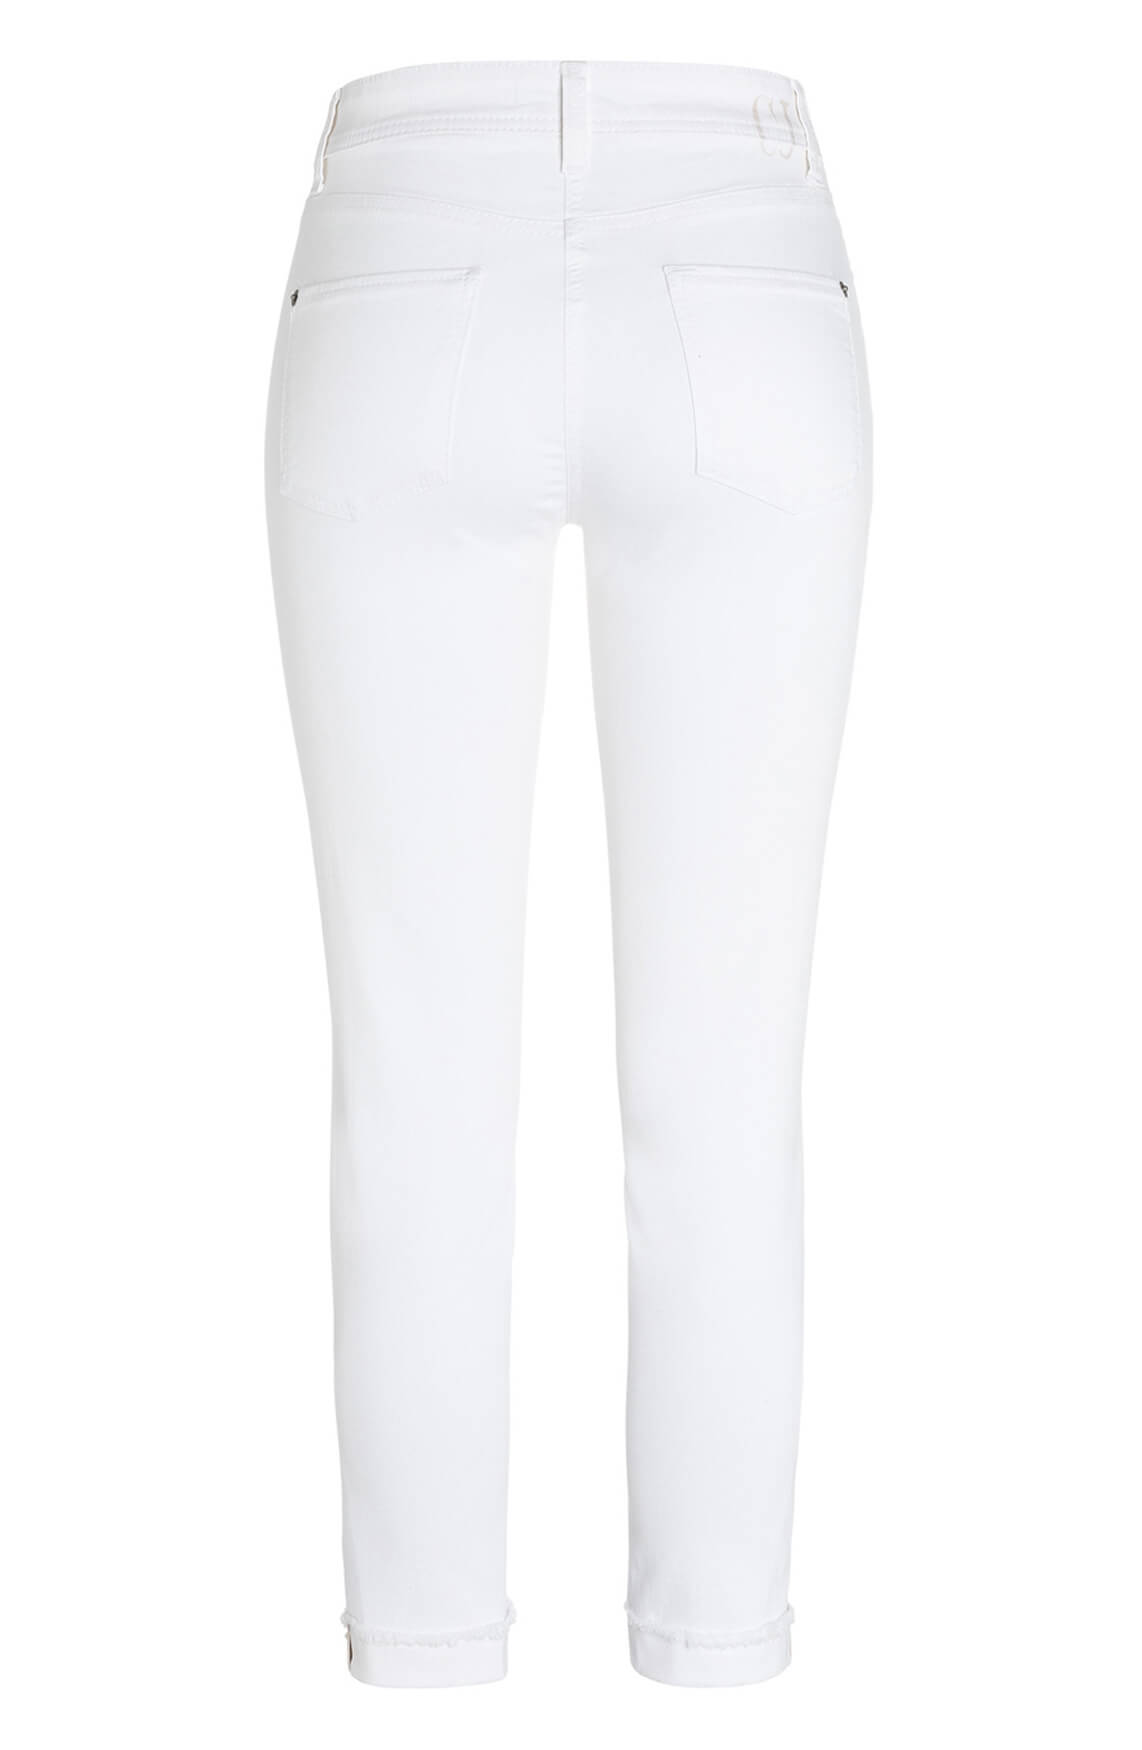 Cambio Dames Piper jeans wit